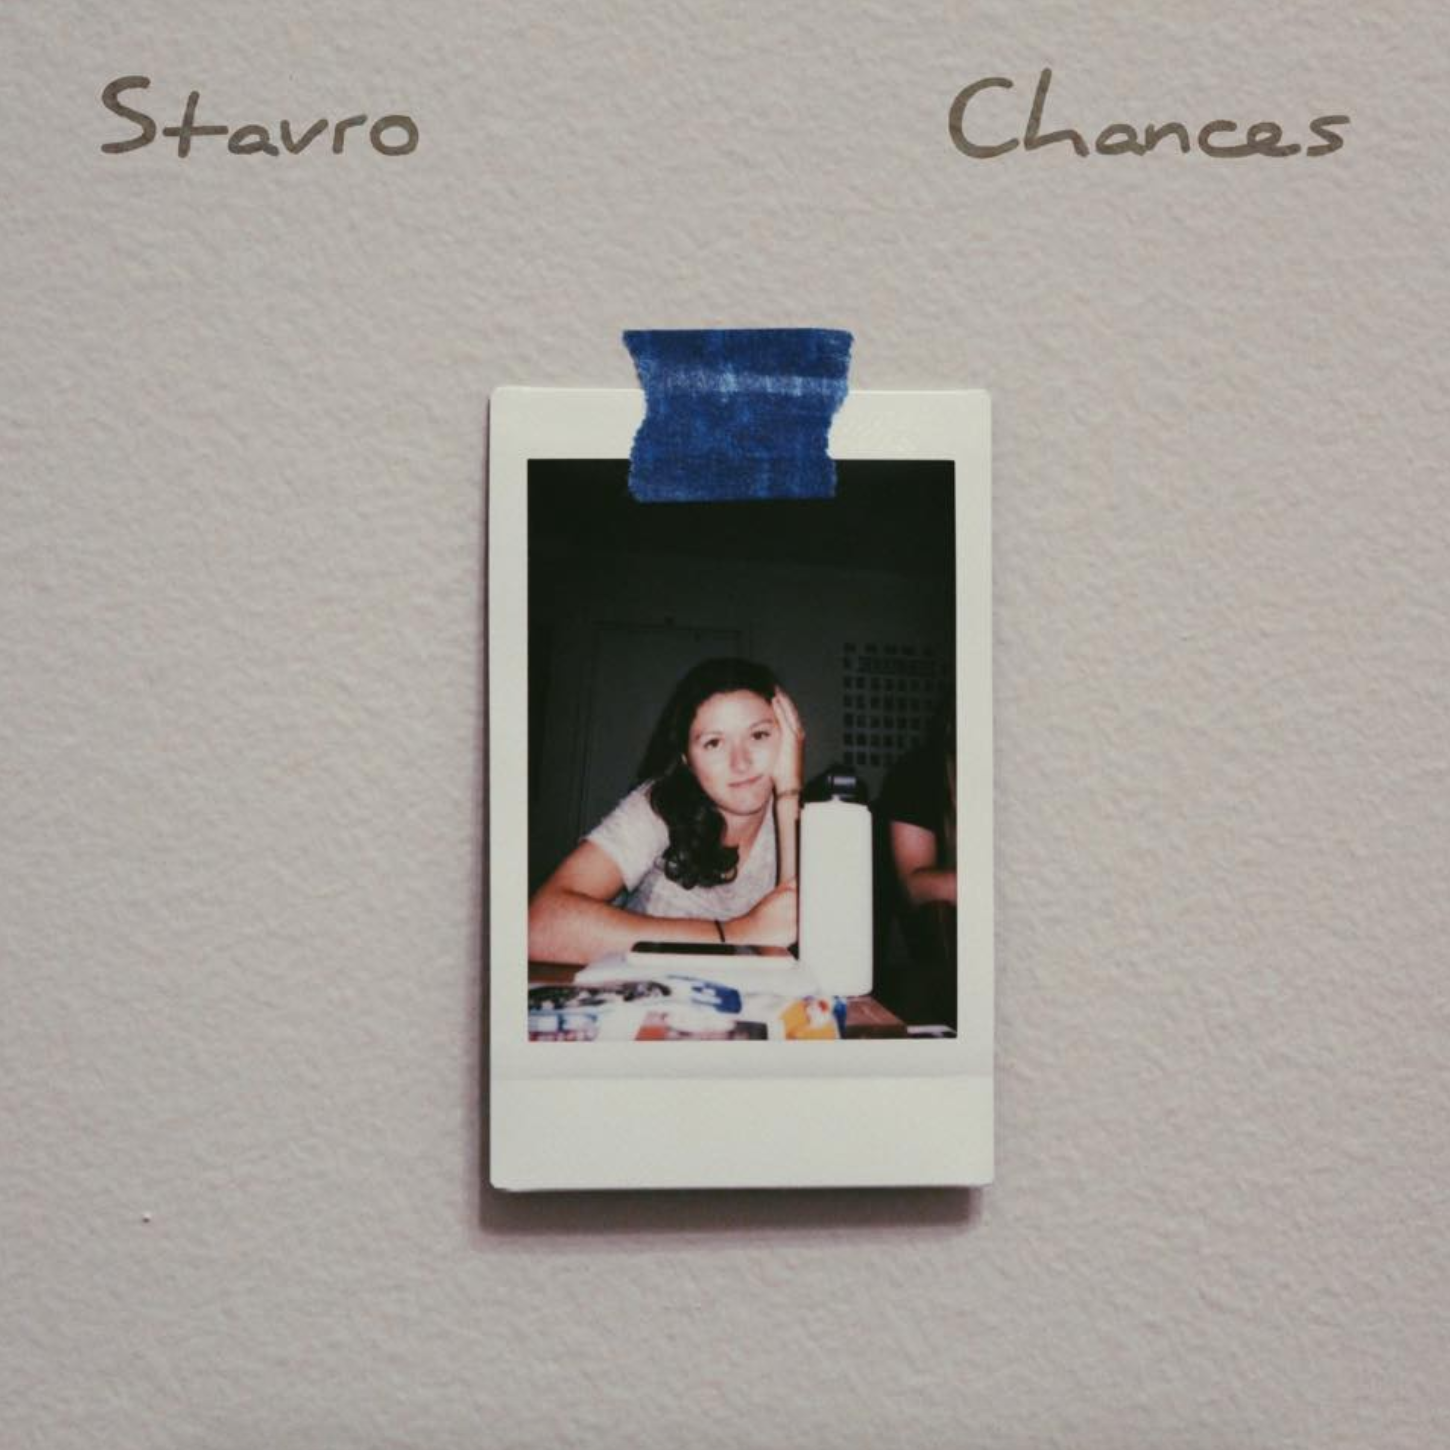 <u><b>Stavros Piperis - Chances</u></b><br><i>(2019, Self)</i><br><small>recording and mix engineer, production